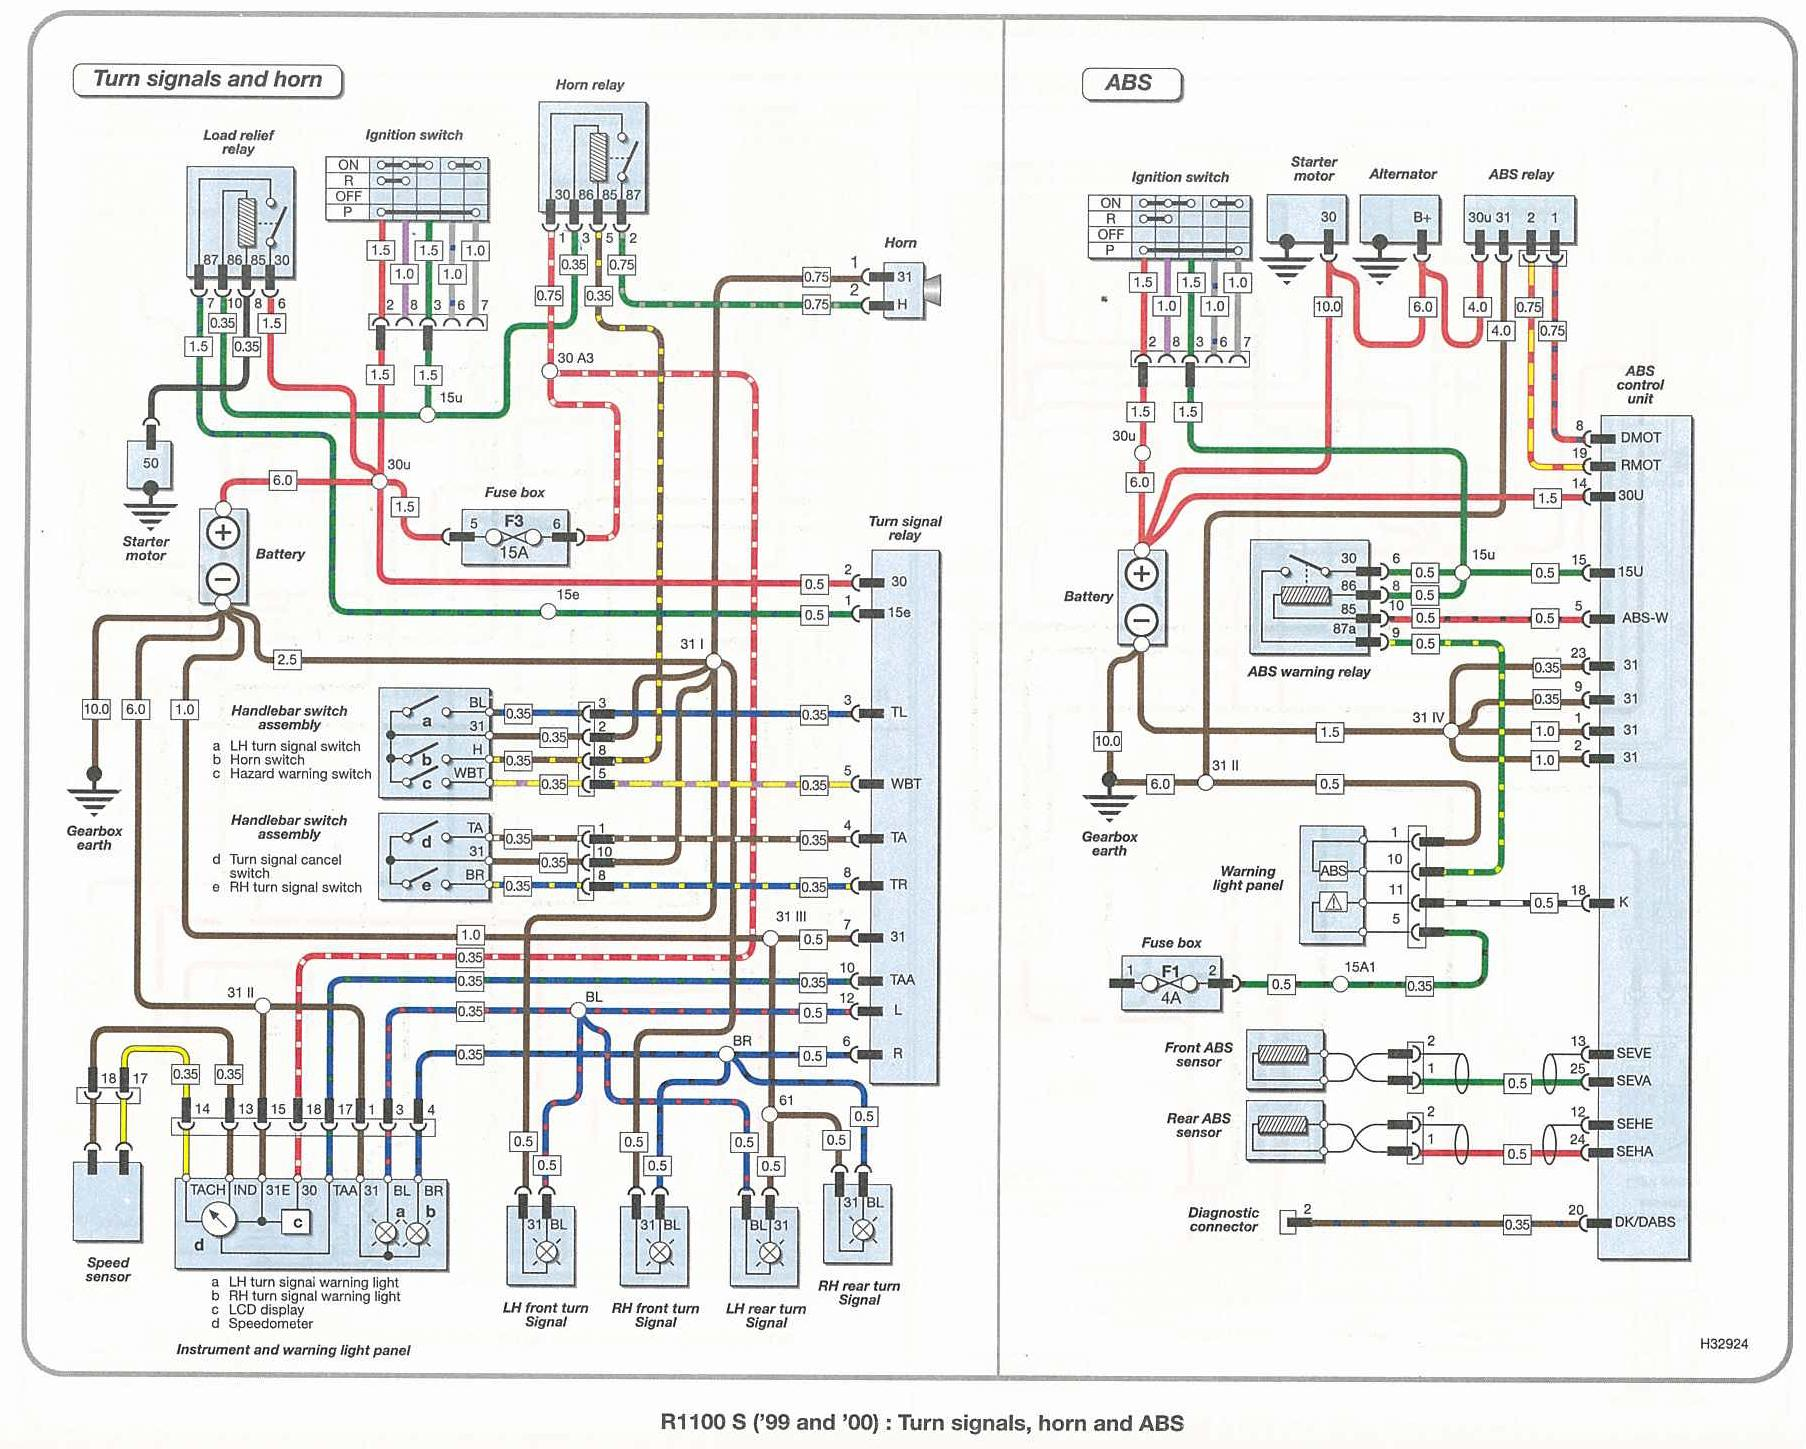 wiring03 bmw wiring diagram bmw wiring diagrams e39 \u2022 wiring diagrams j bmw e46 wiring loom diagram at gsmportal.co